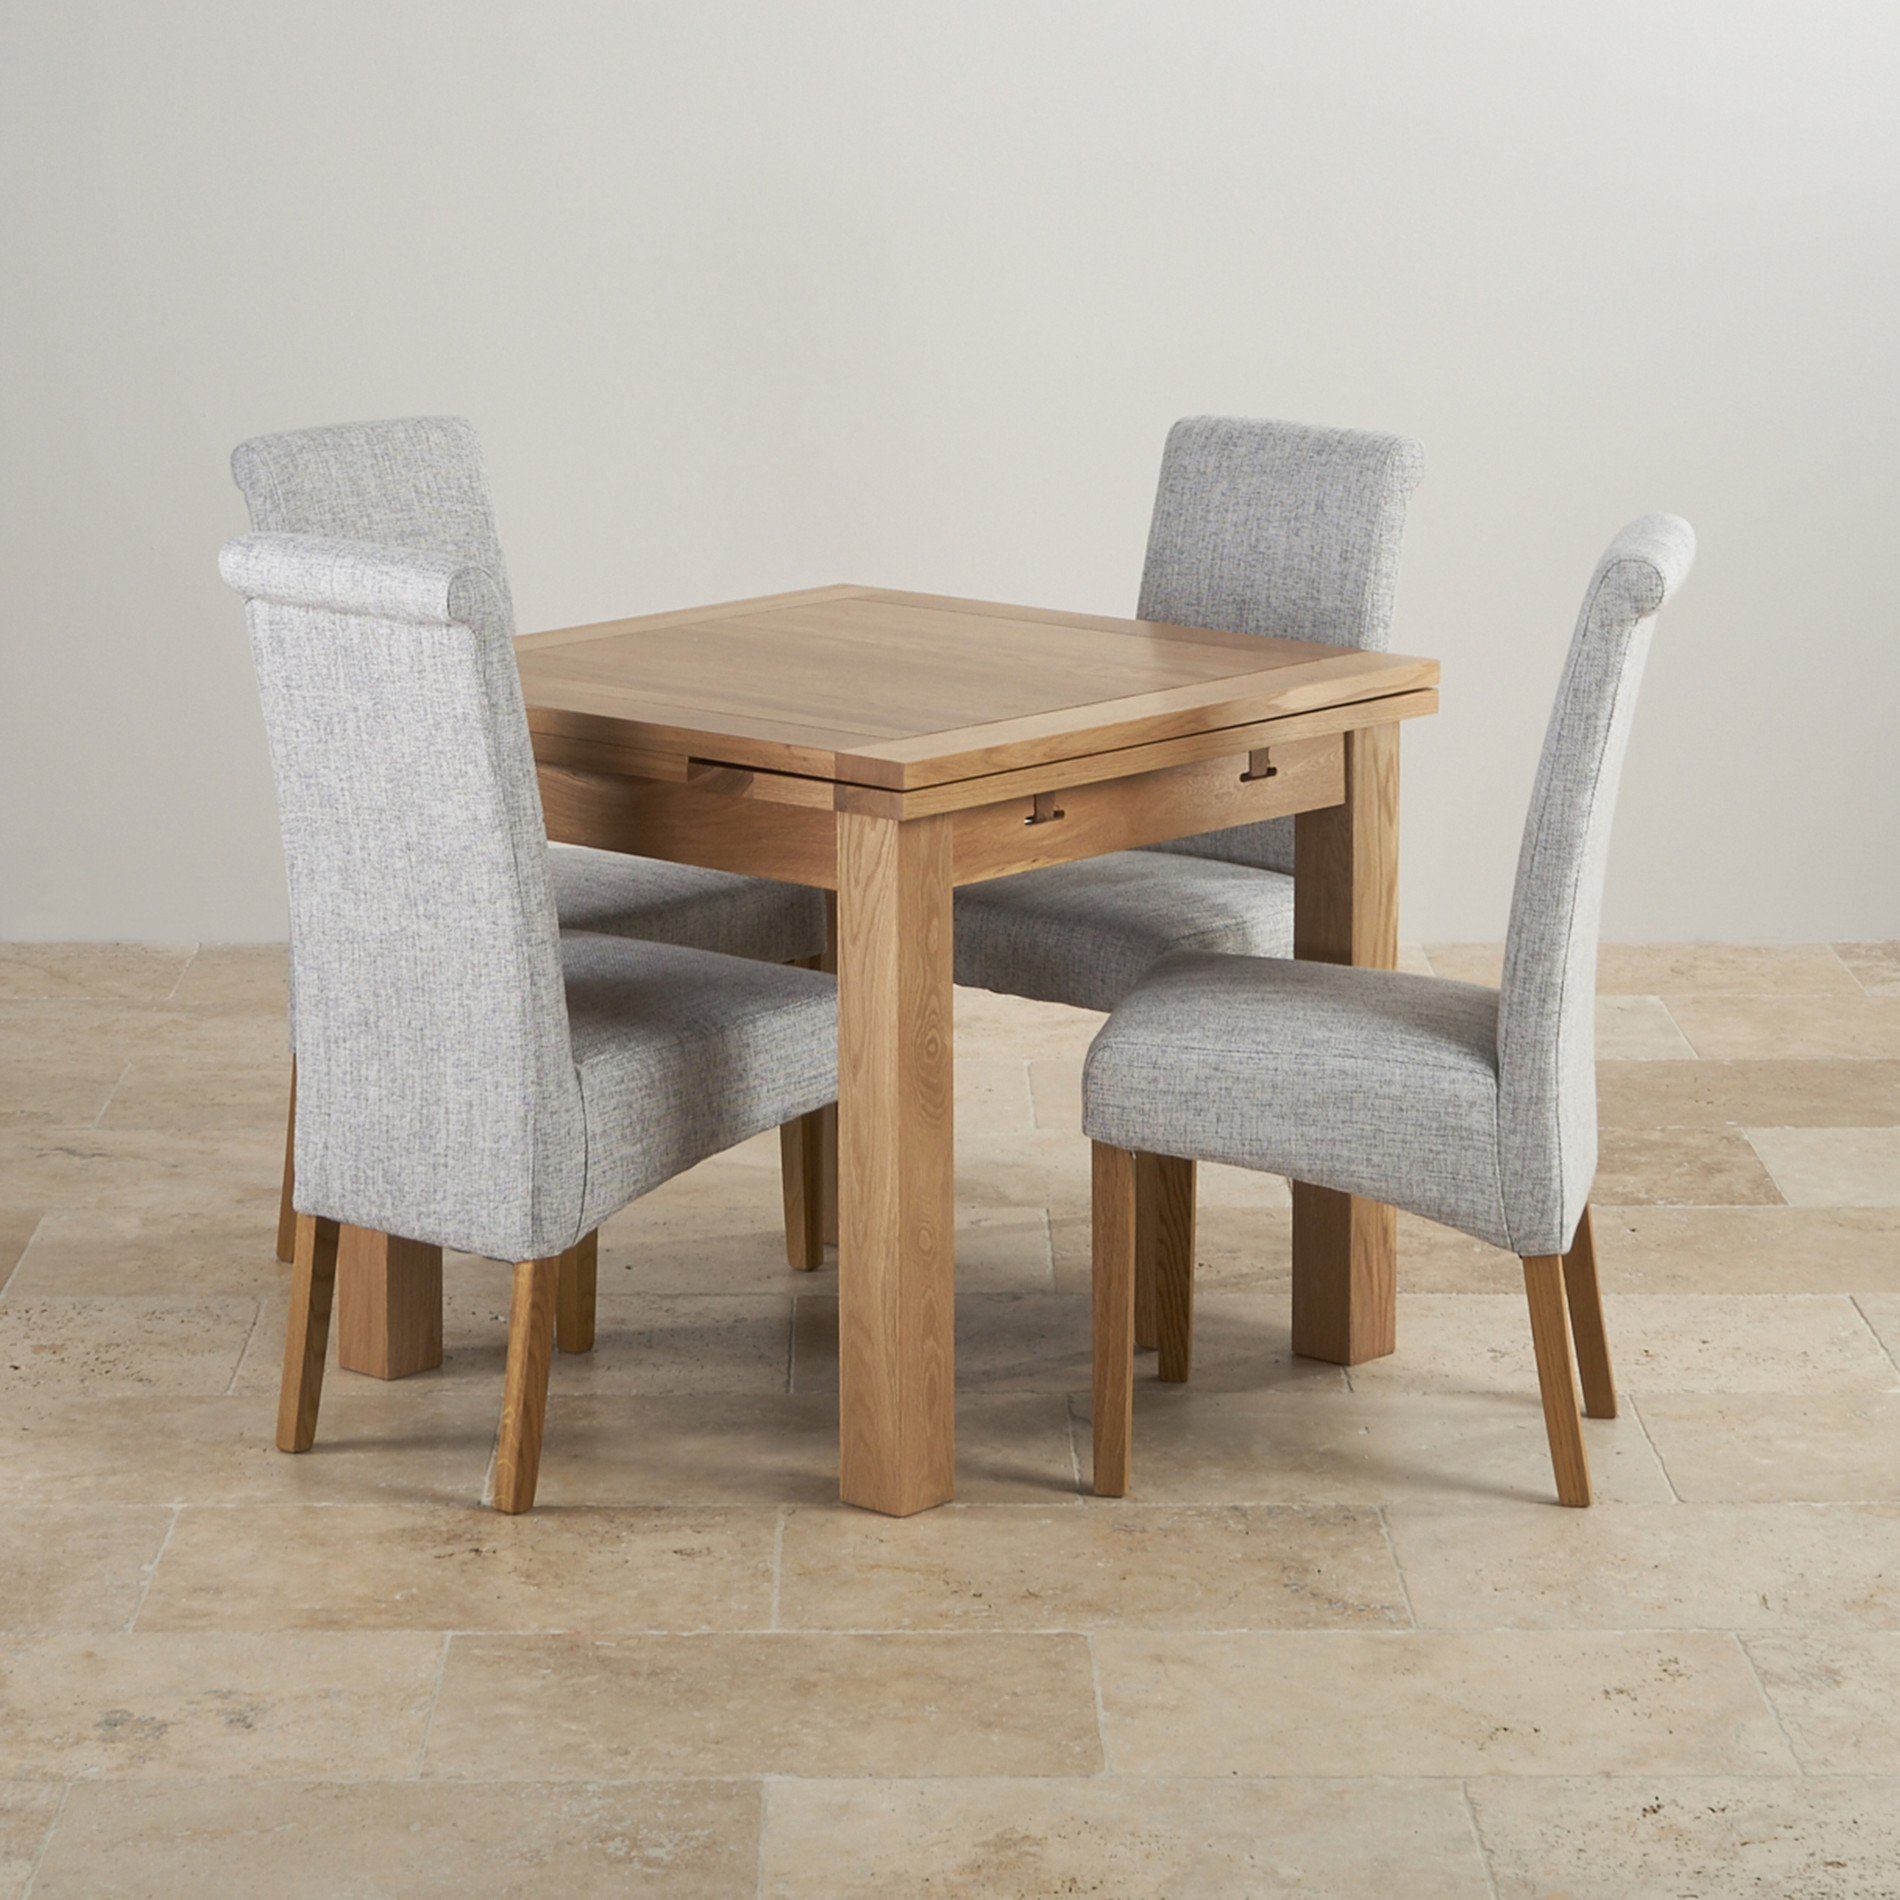 Dorset oak 3ft dining table with 4 grey fabric chairs for Dining table chairs